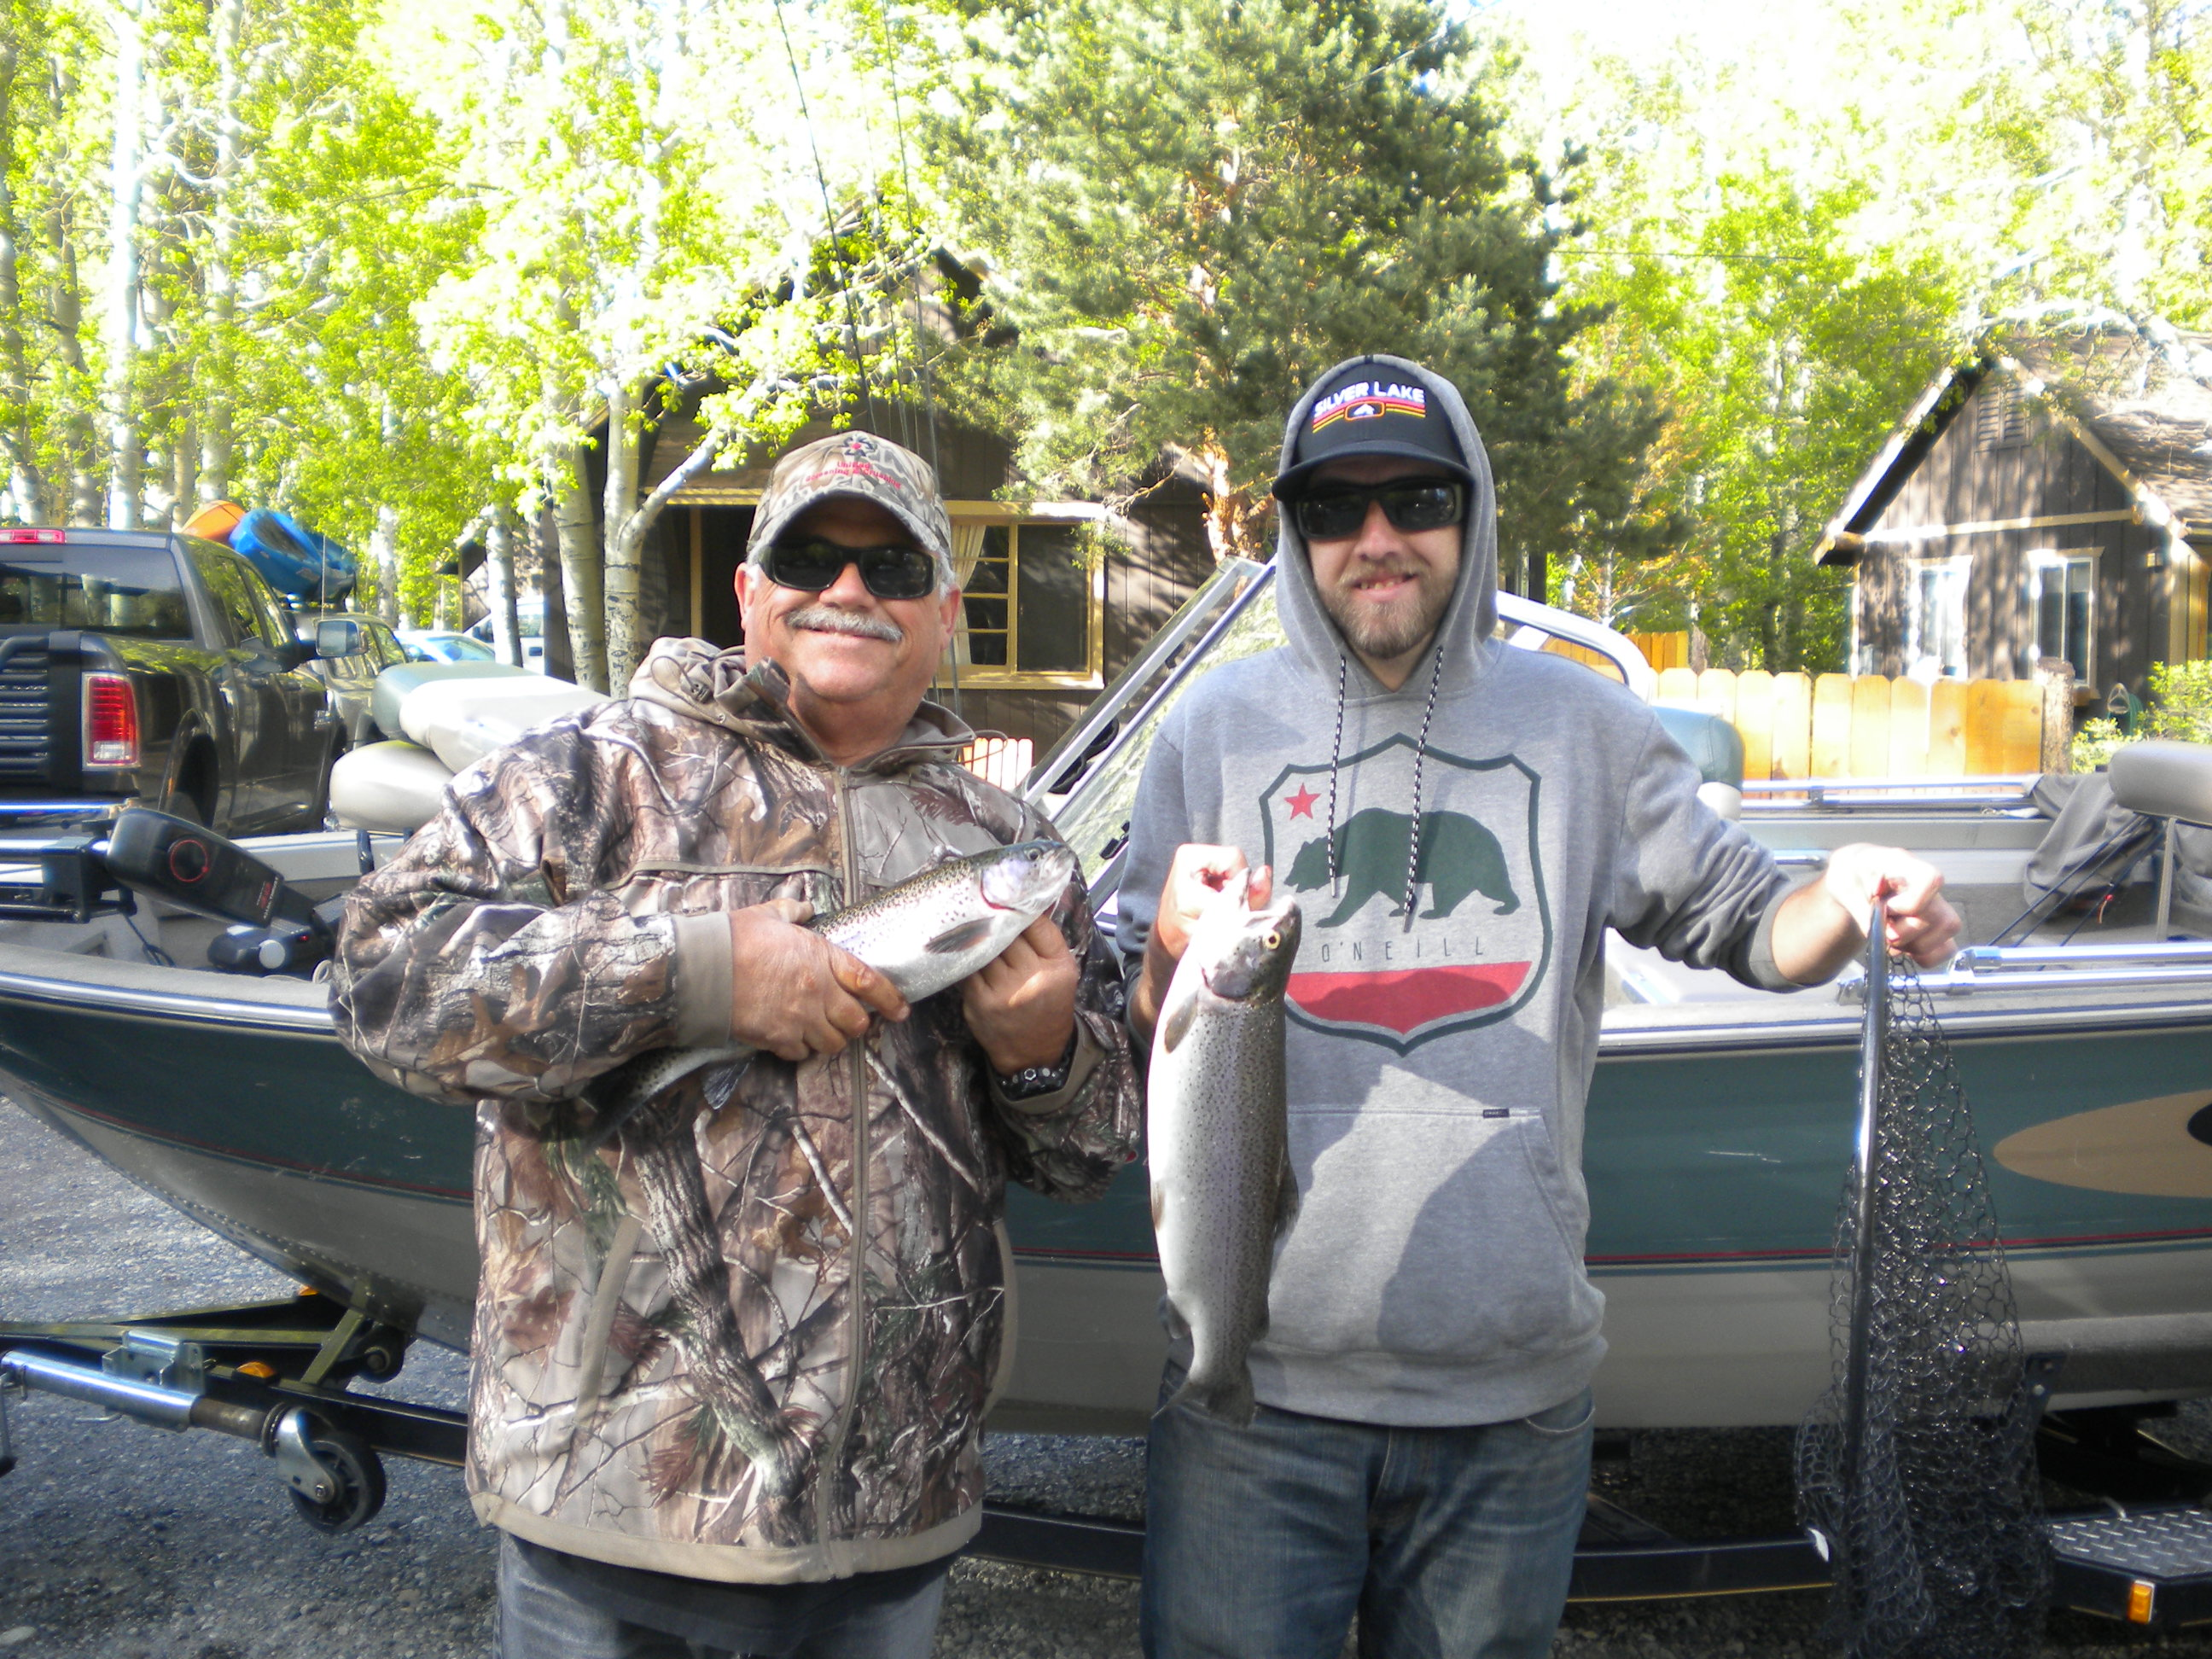 Silver lake fishing report 5 21 5 28 16 silver lake resort for The fish report